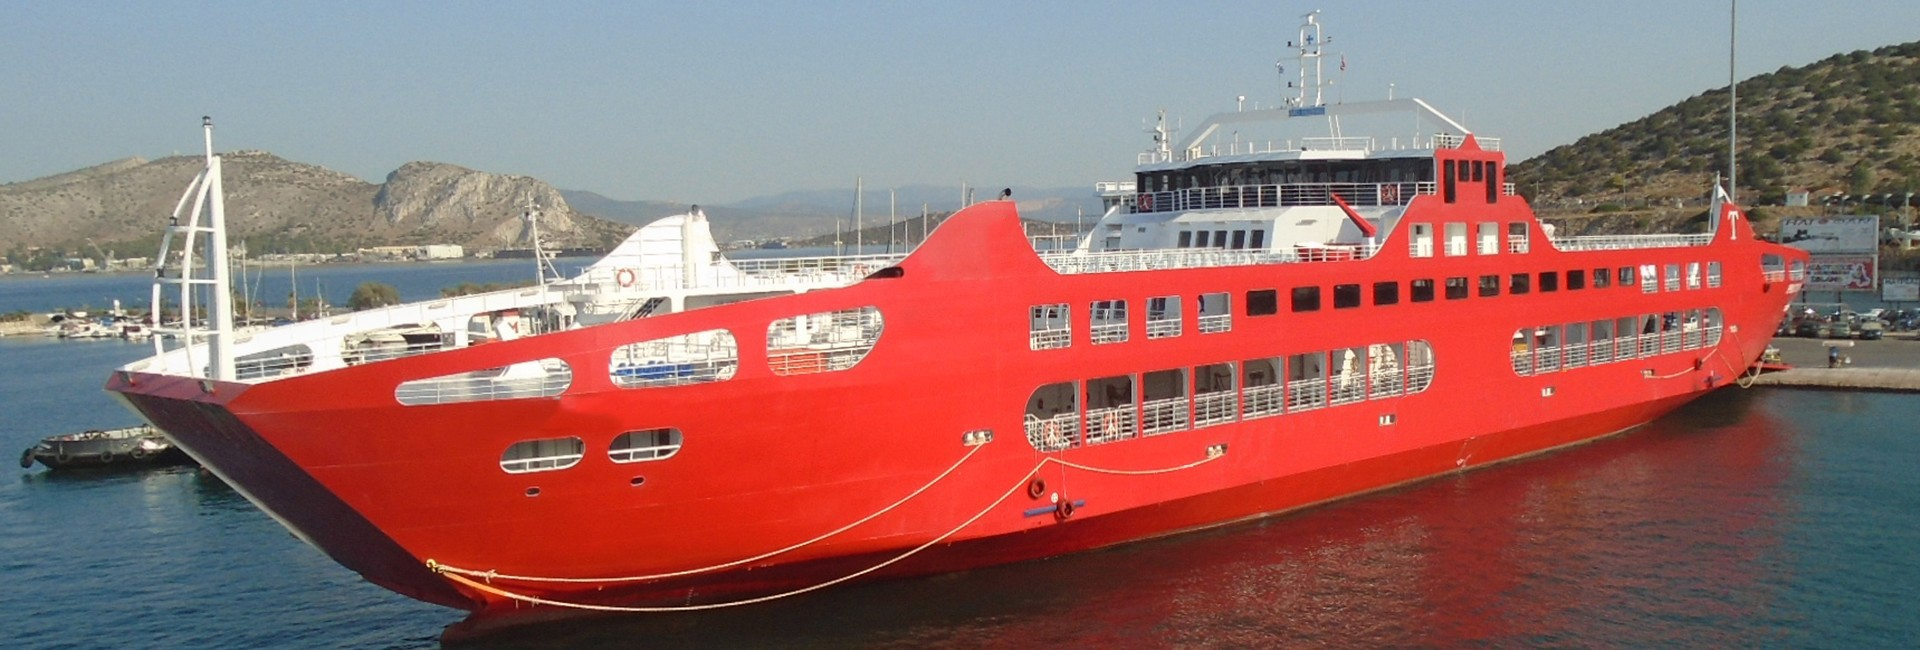 Hellas Ship Sales deals with purchase and sale of various